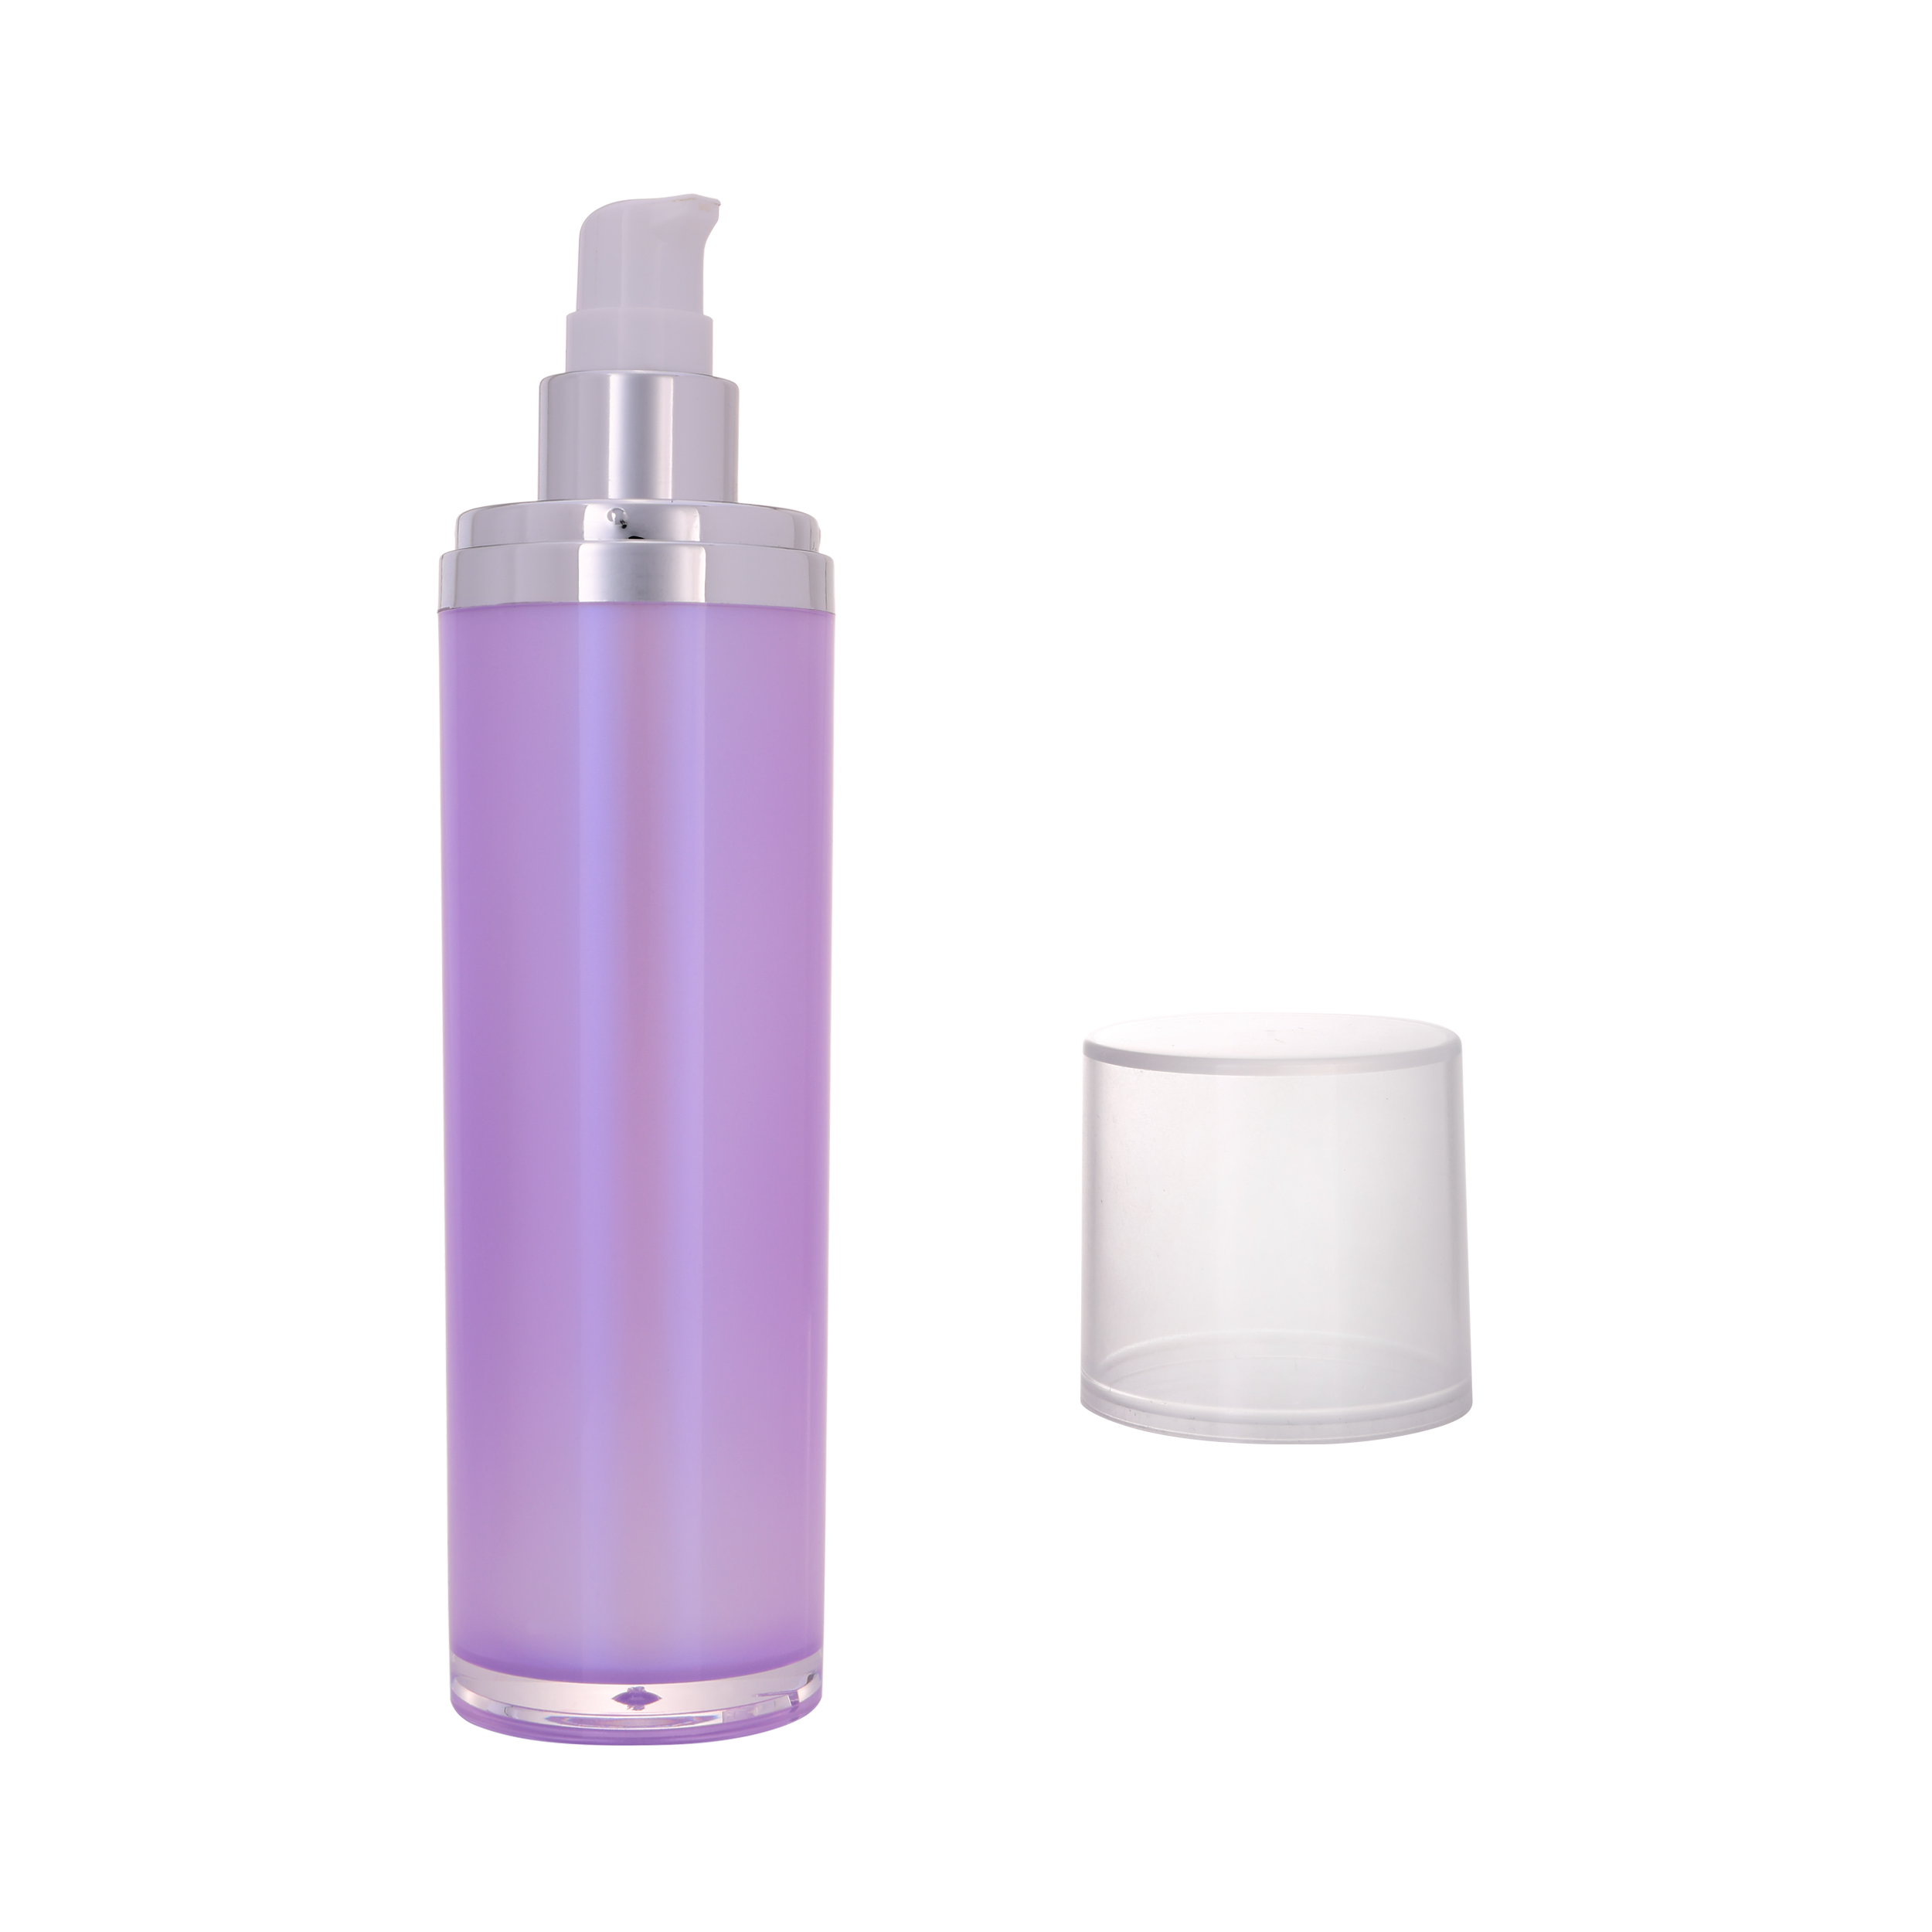 50ml 80ml cream lotion airless bottle for cosmetic